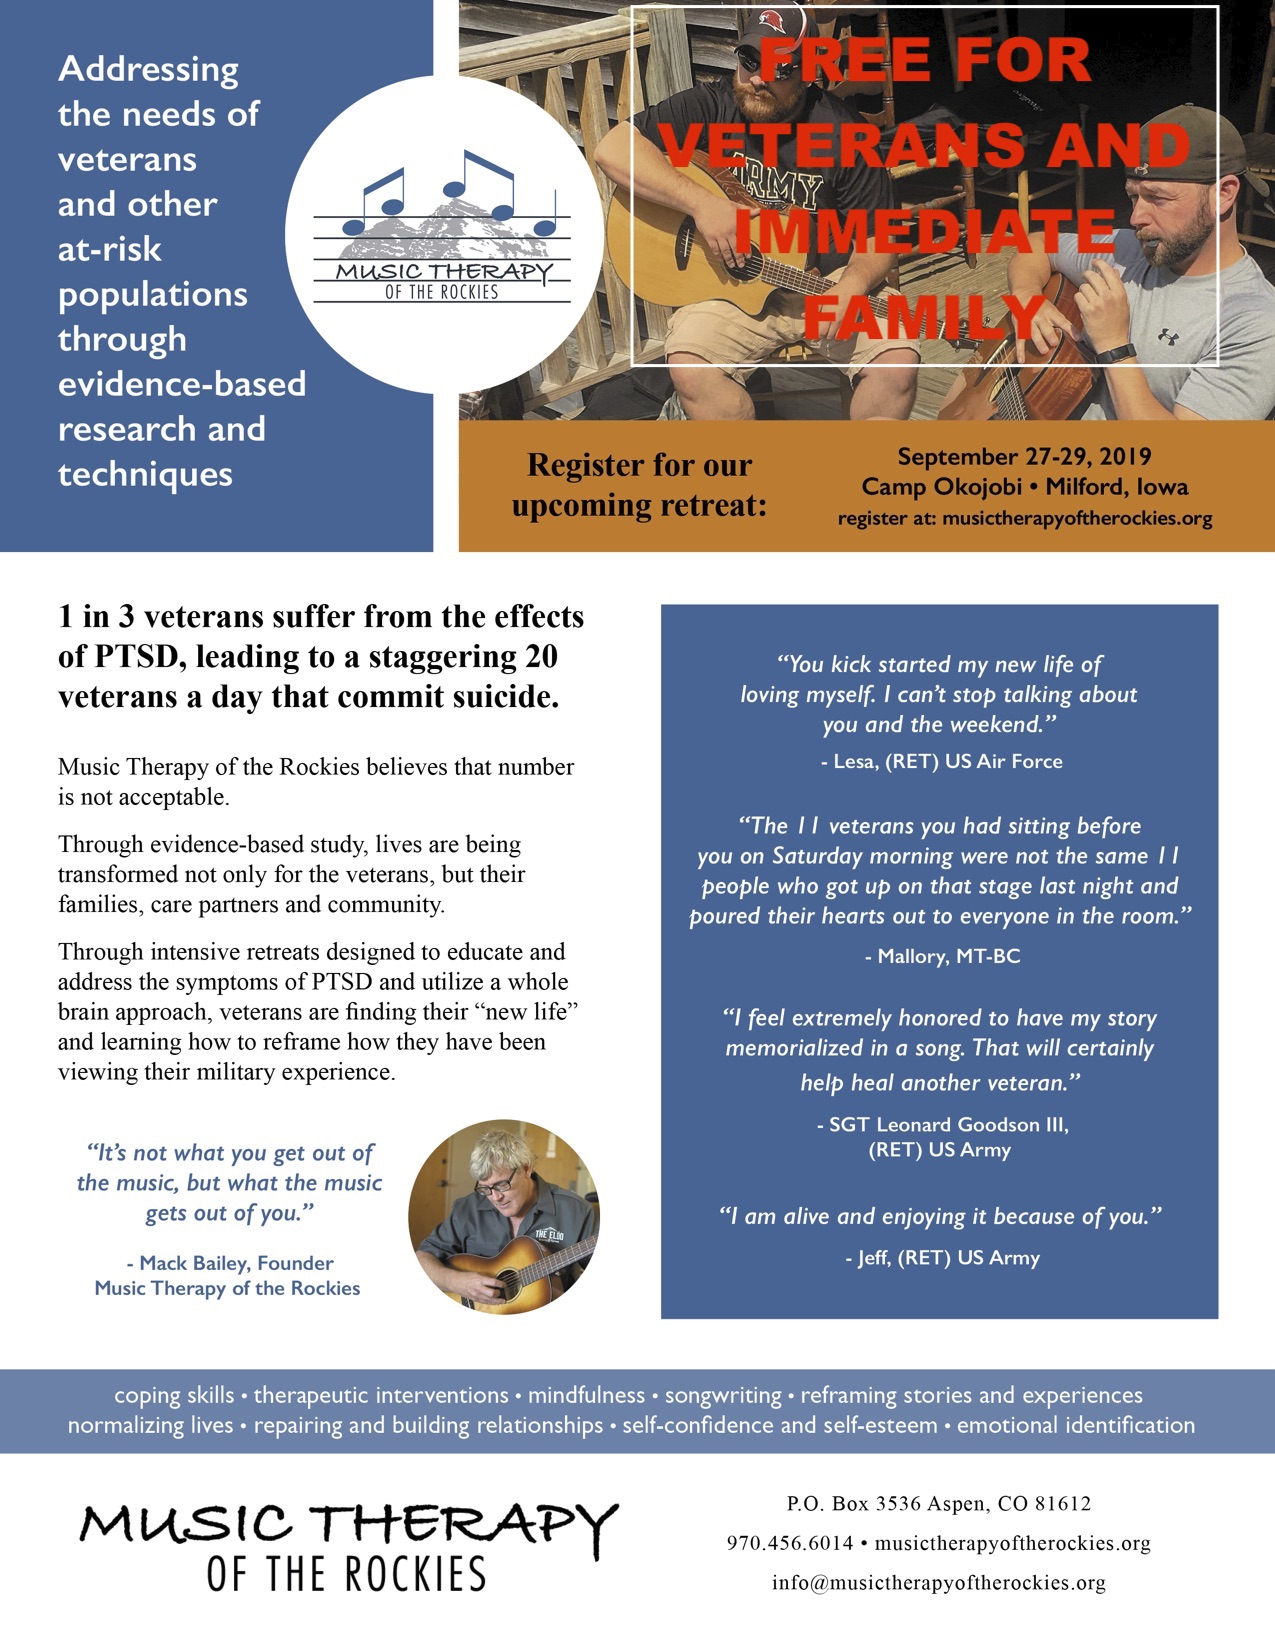 Music Therapy of the Rockies, Camp Okojobi, Milfor, Iowa, September 27-29, 2019